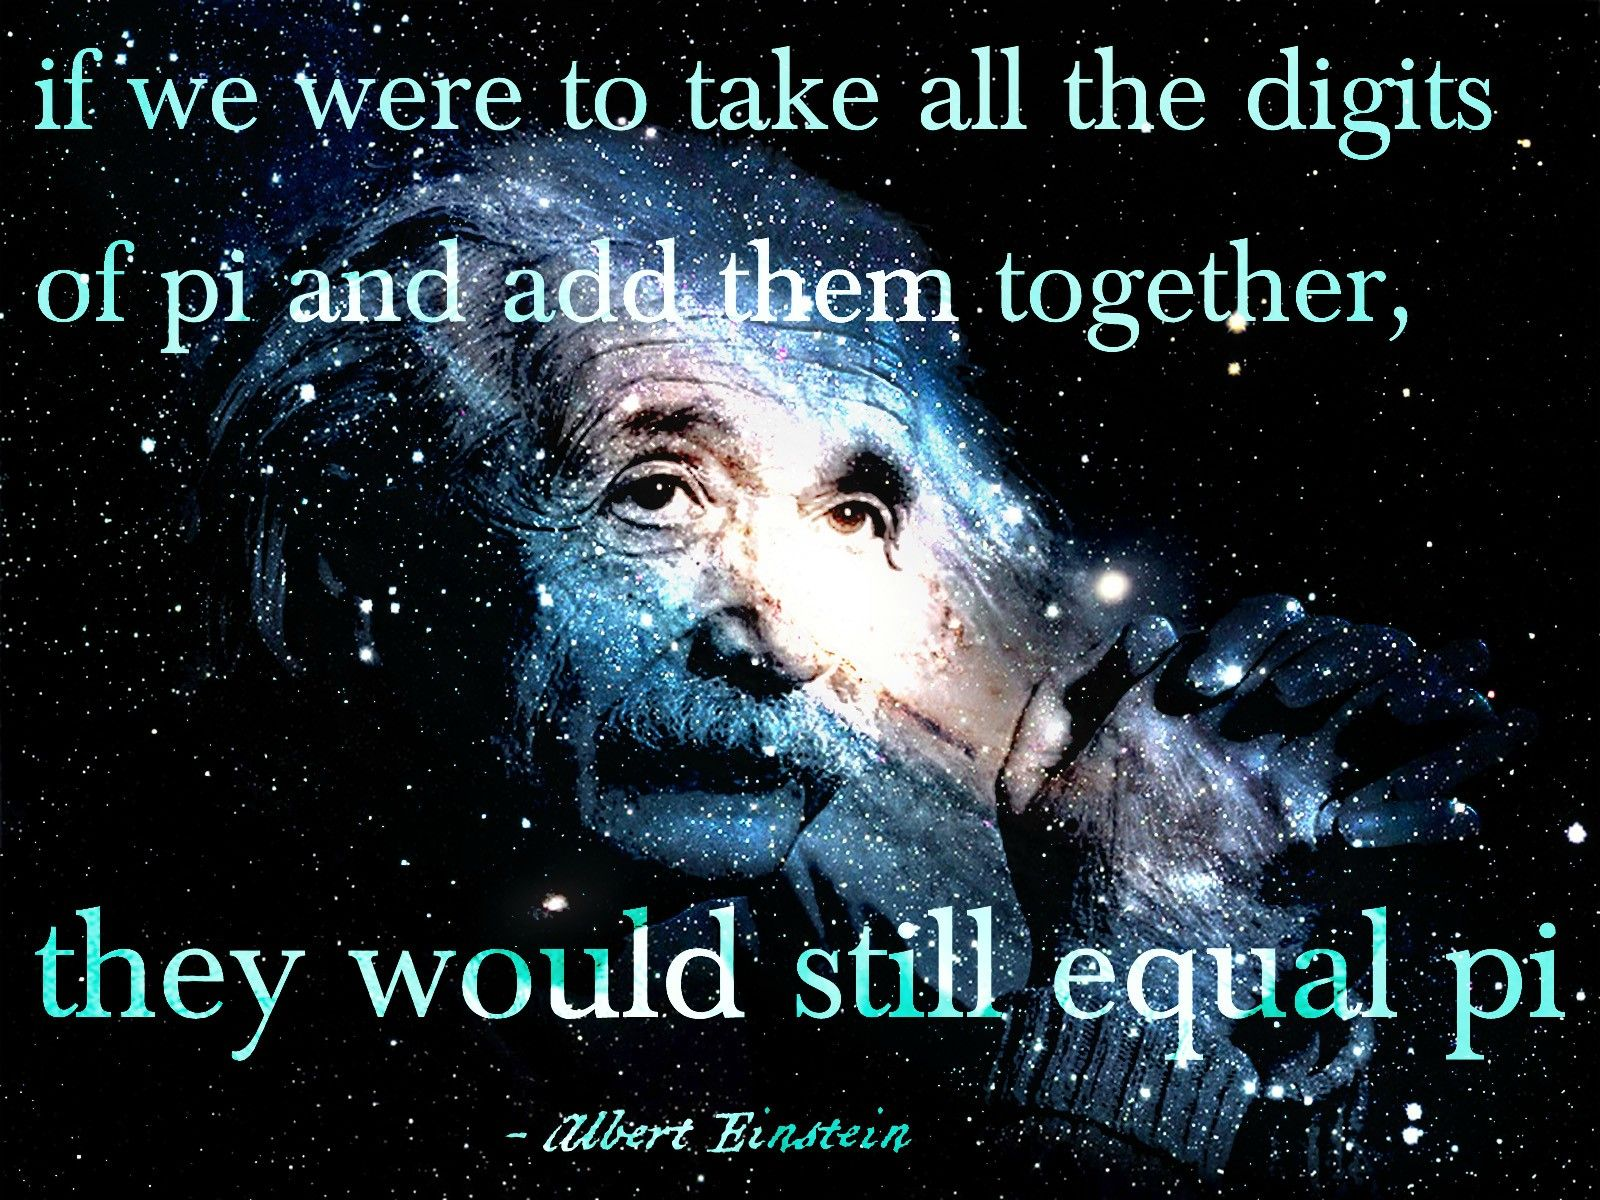 sci/ made some inspiring and mind blowing quotes of science ...